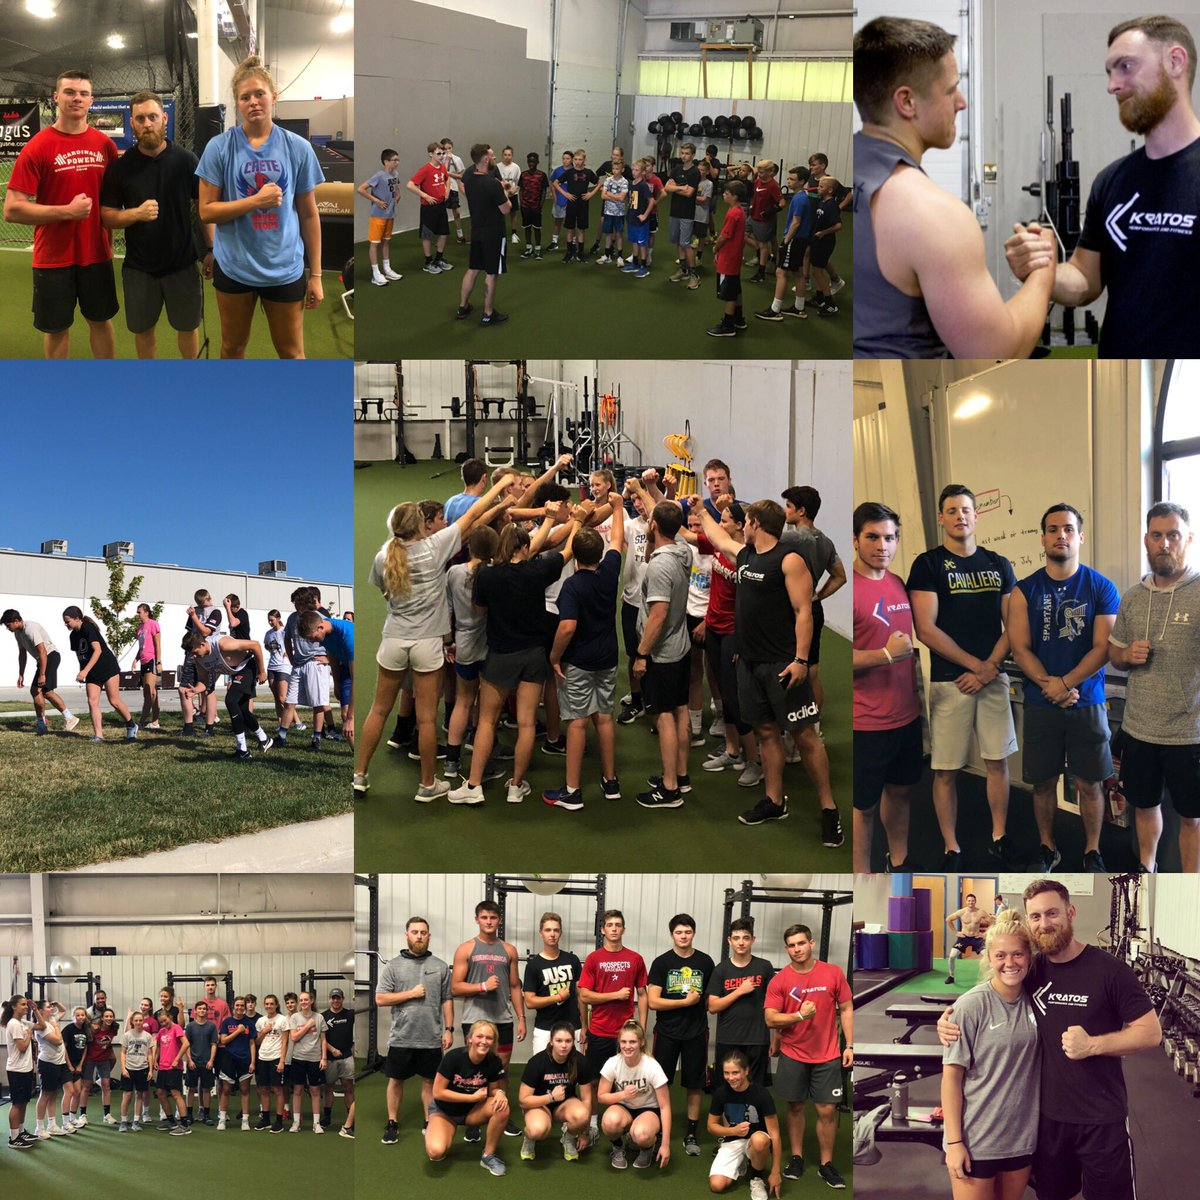 Summer 2019 is in the books. It was more than I could have ever imagined. It's amazing how many athletes came in this summer and got better! I am beyond blessed to work with such hard working athletes and loving families sports and life!   #summer2019 #summertraining #coachg<br>http://pic.twitter.com/7NfThfQGrN